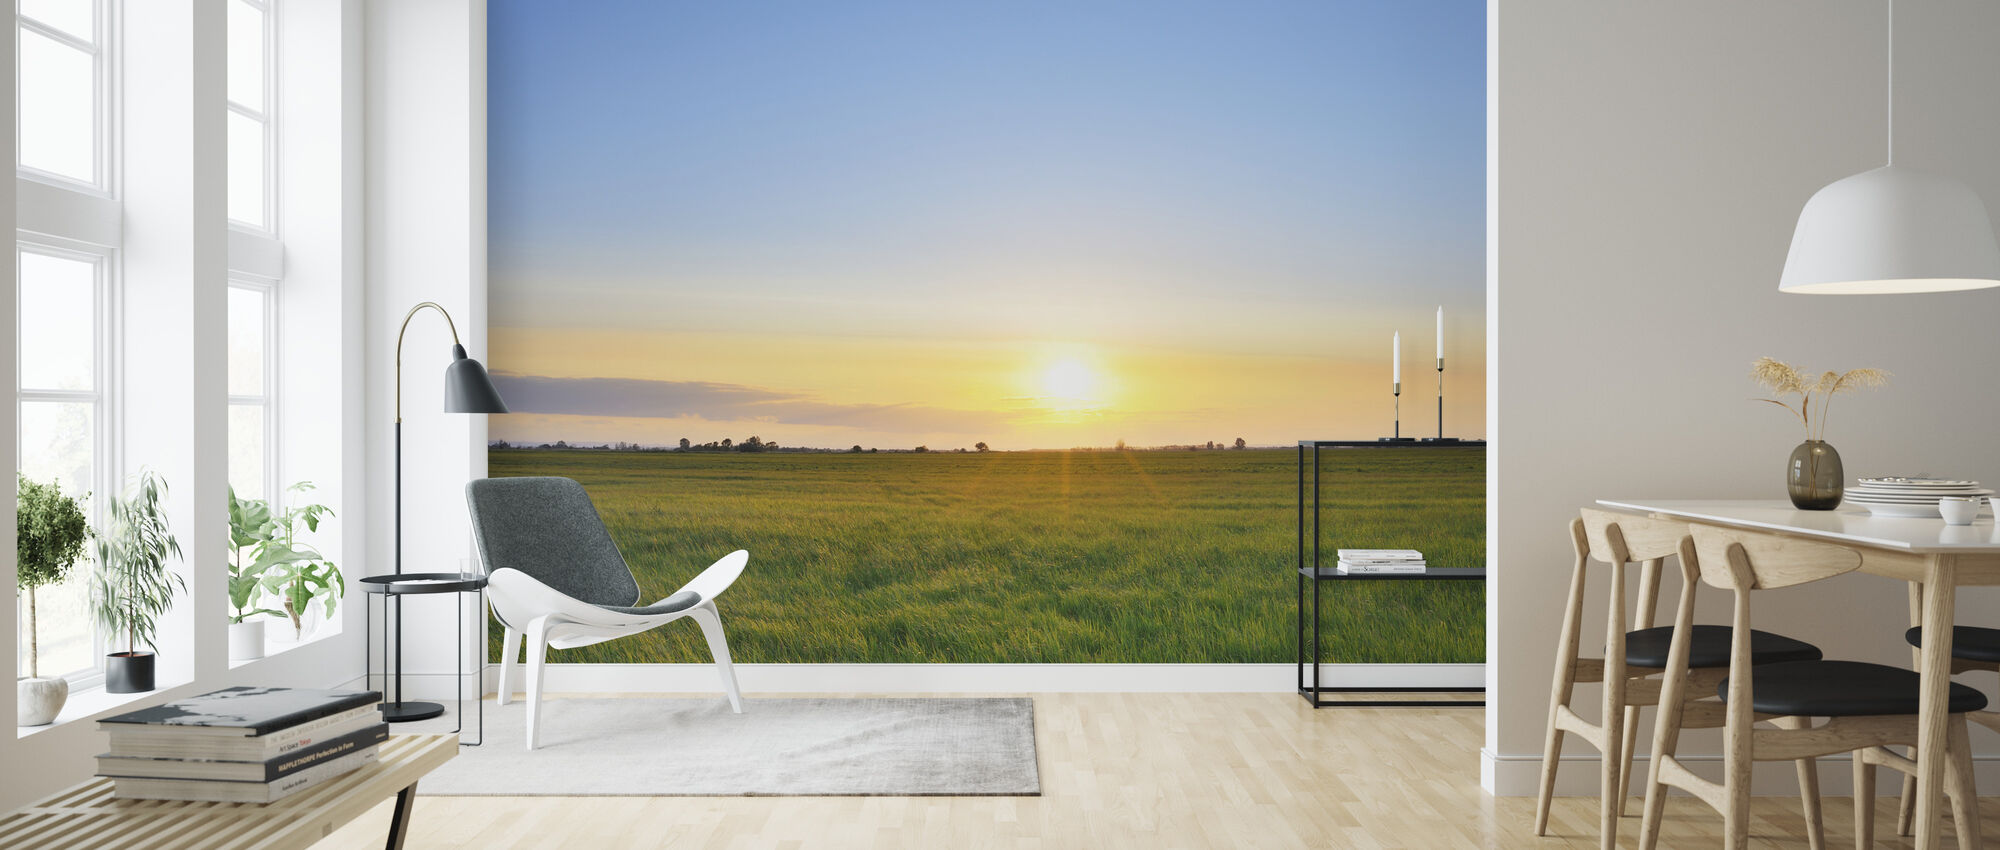 Meadow at Sunset - Wallpaper - Living Room